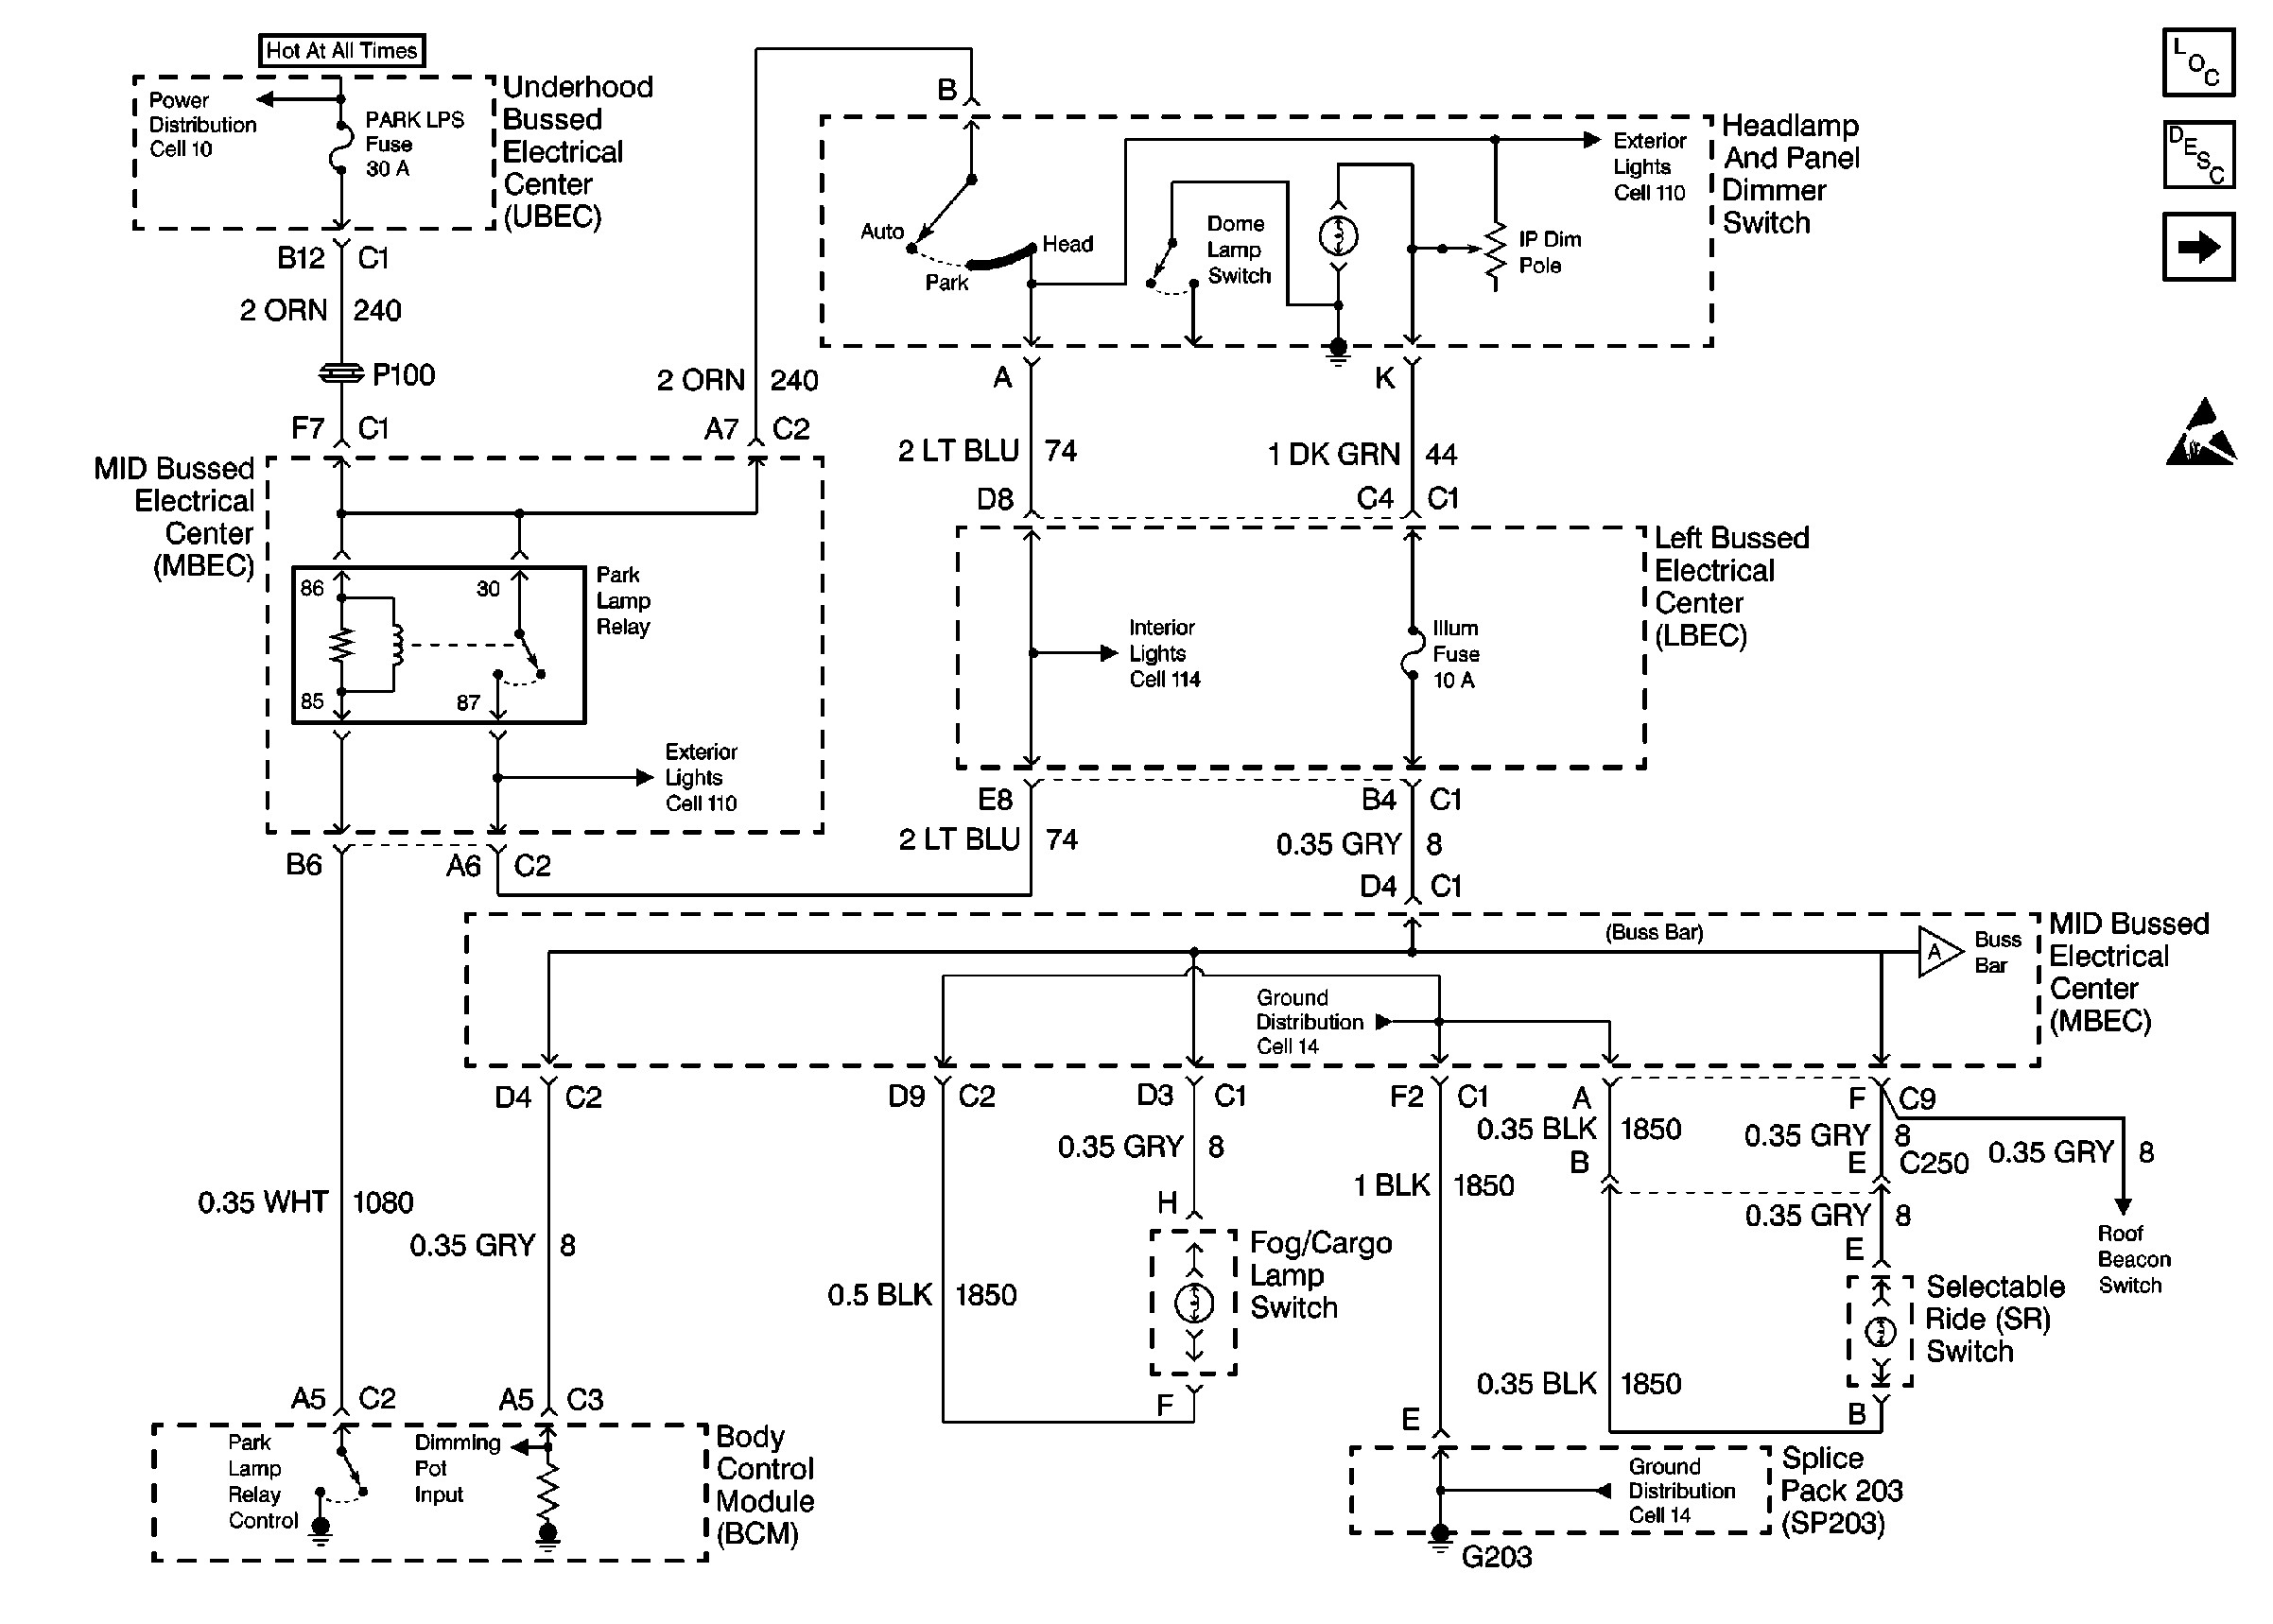 Chevy Tahoe Trailer Wiring Diagram - 2003 Chevy Tahoe Radio Wiring Diagram Diagram 2008 Impala Headlight Wiring Diagram Chevy Equinox 2007 Pnp Wiring Diagram 12f